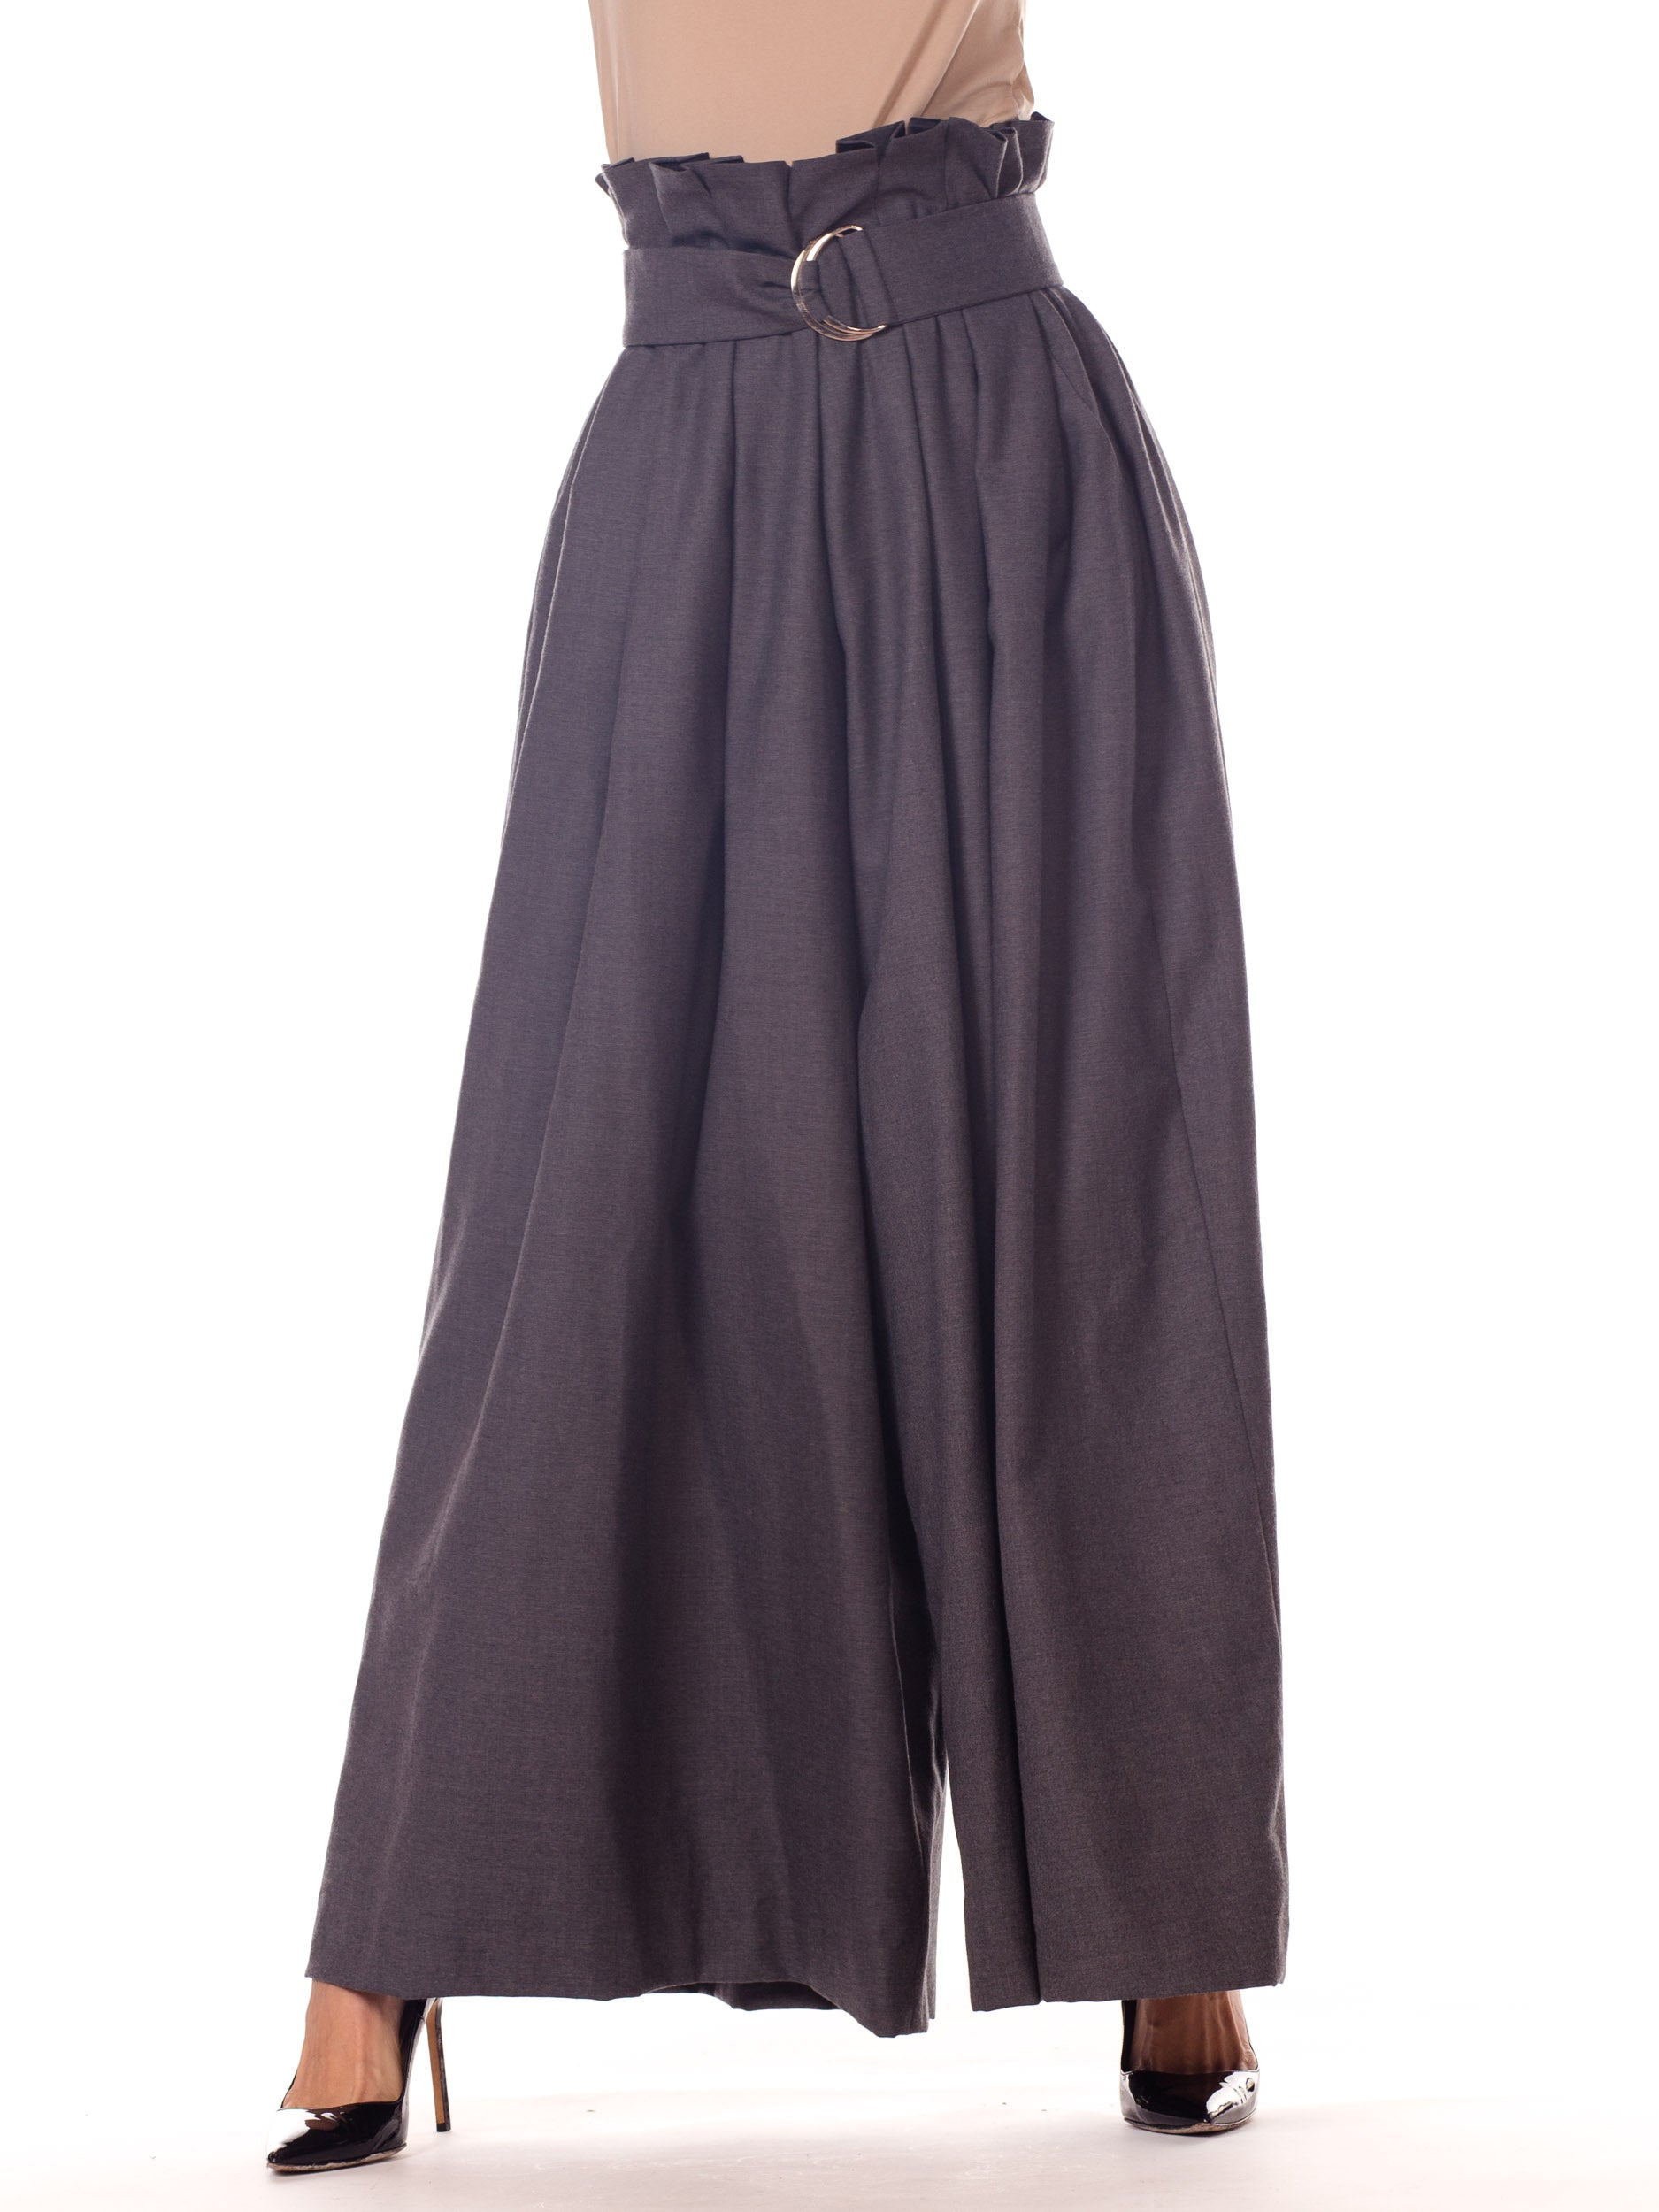 1990S HOUGHTON Heather Grey Cashmere Wide Leg Paperbag Pants With Self Fabric Belt